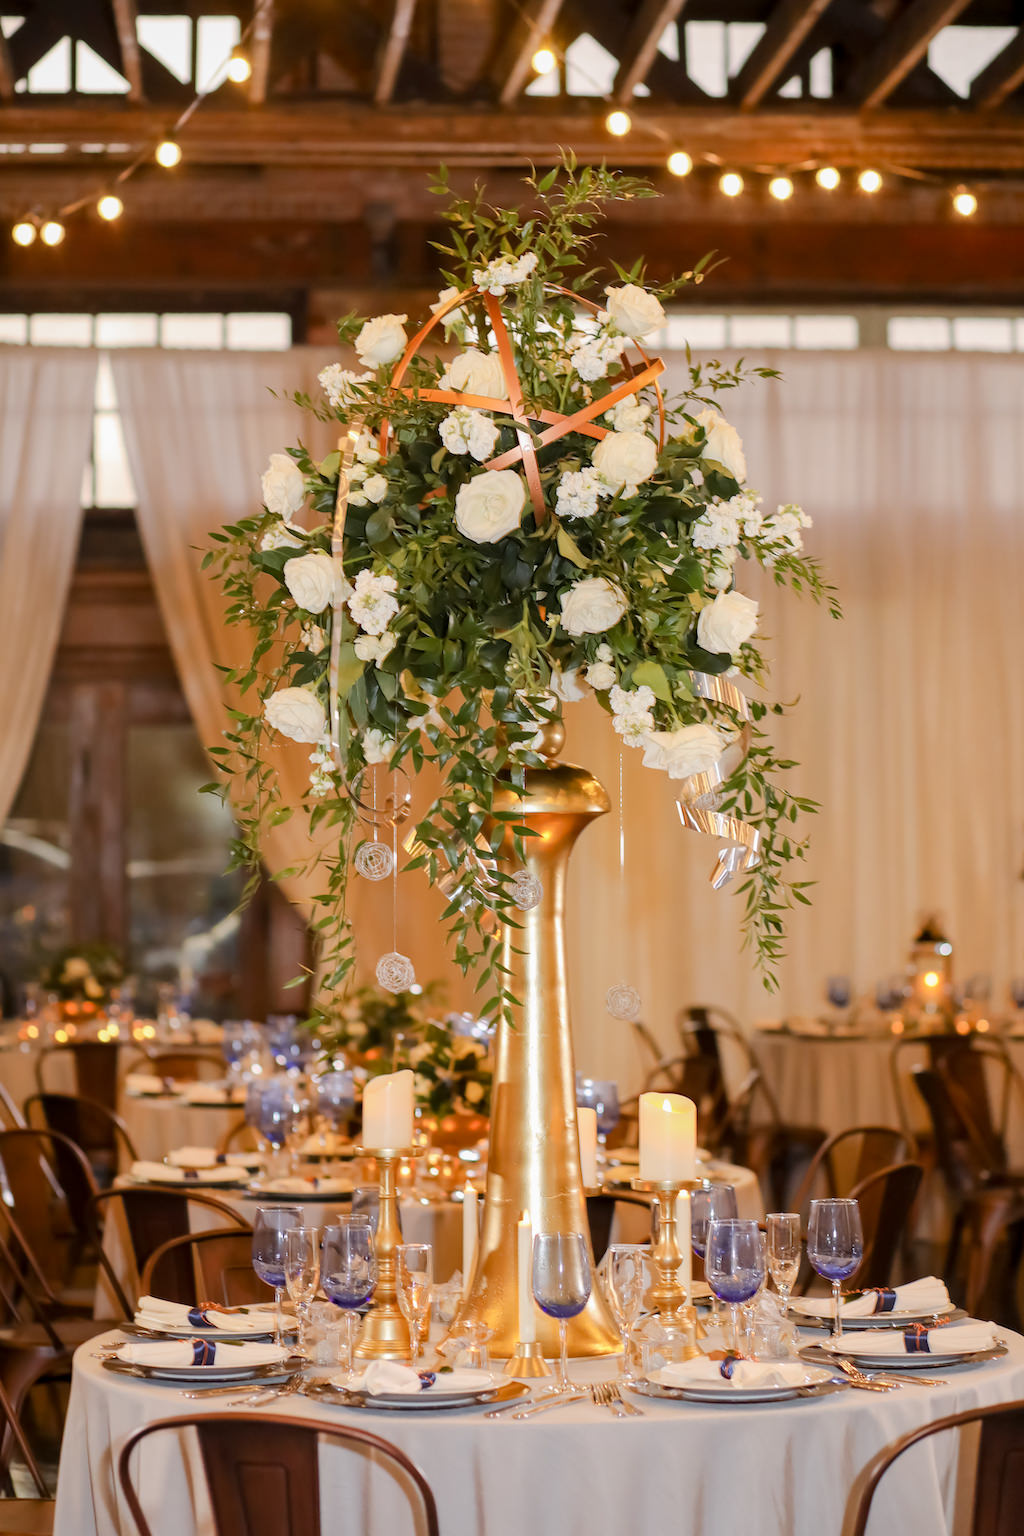 Industrial Inspired Wedding Reception Decor, Tall Gold Metal Vase with White and Greenery Florals in Geometric Circular Sphere with Hanging Crystals, Round Table with White Tablecloth, Blue Drinking Glasses, Bronze Metal Chairs   Tampa Bay Wedding Photographer Lifelong Photography Studios